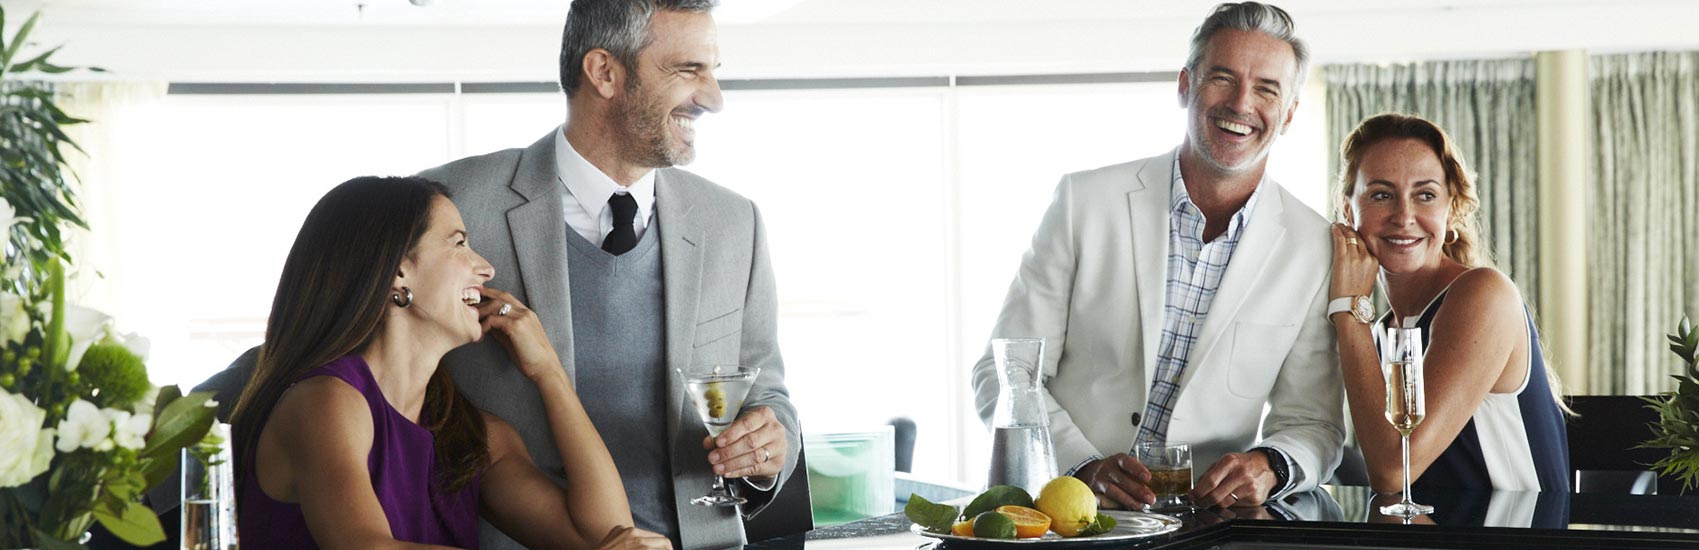 Set Sail in 2021 with Seabourn 2